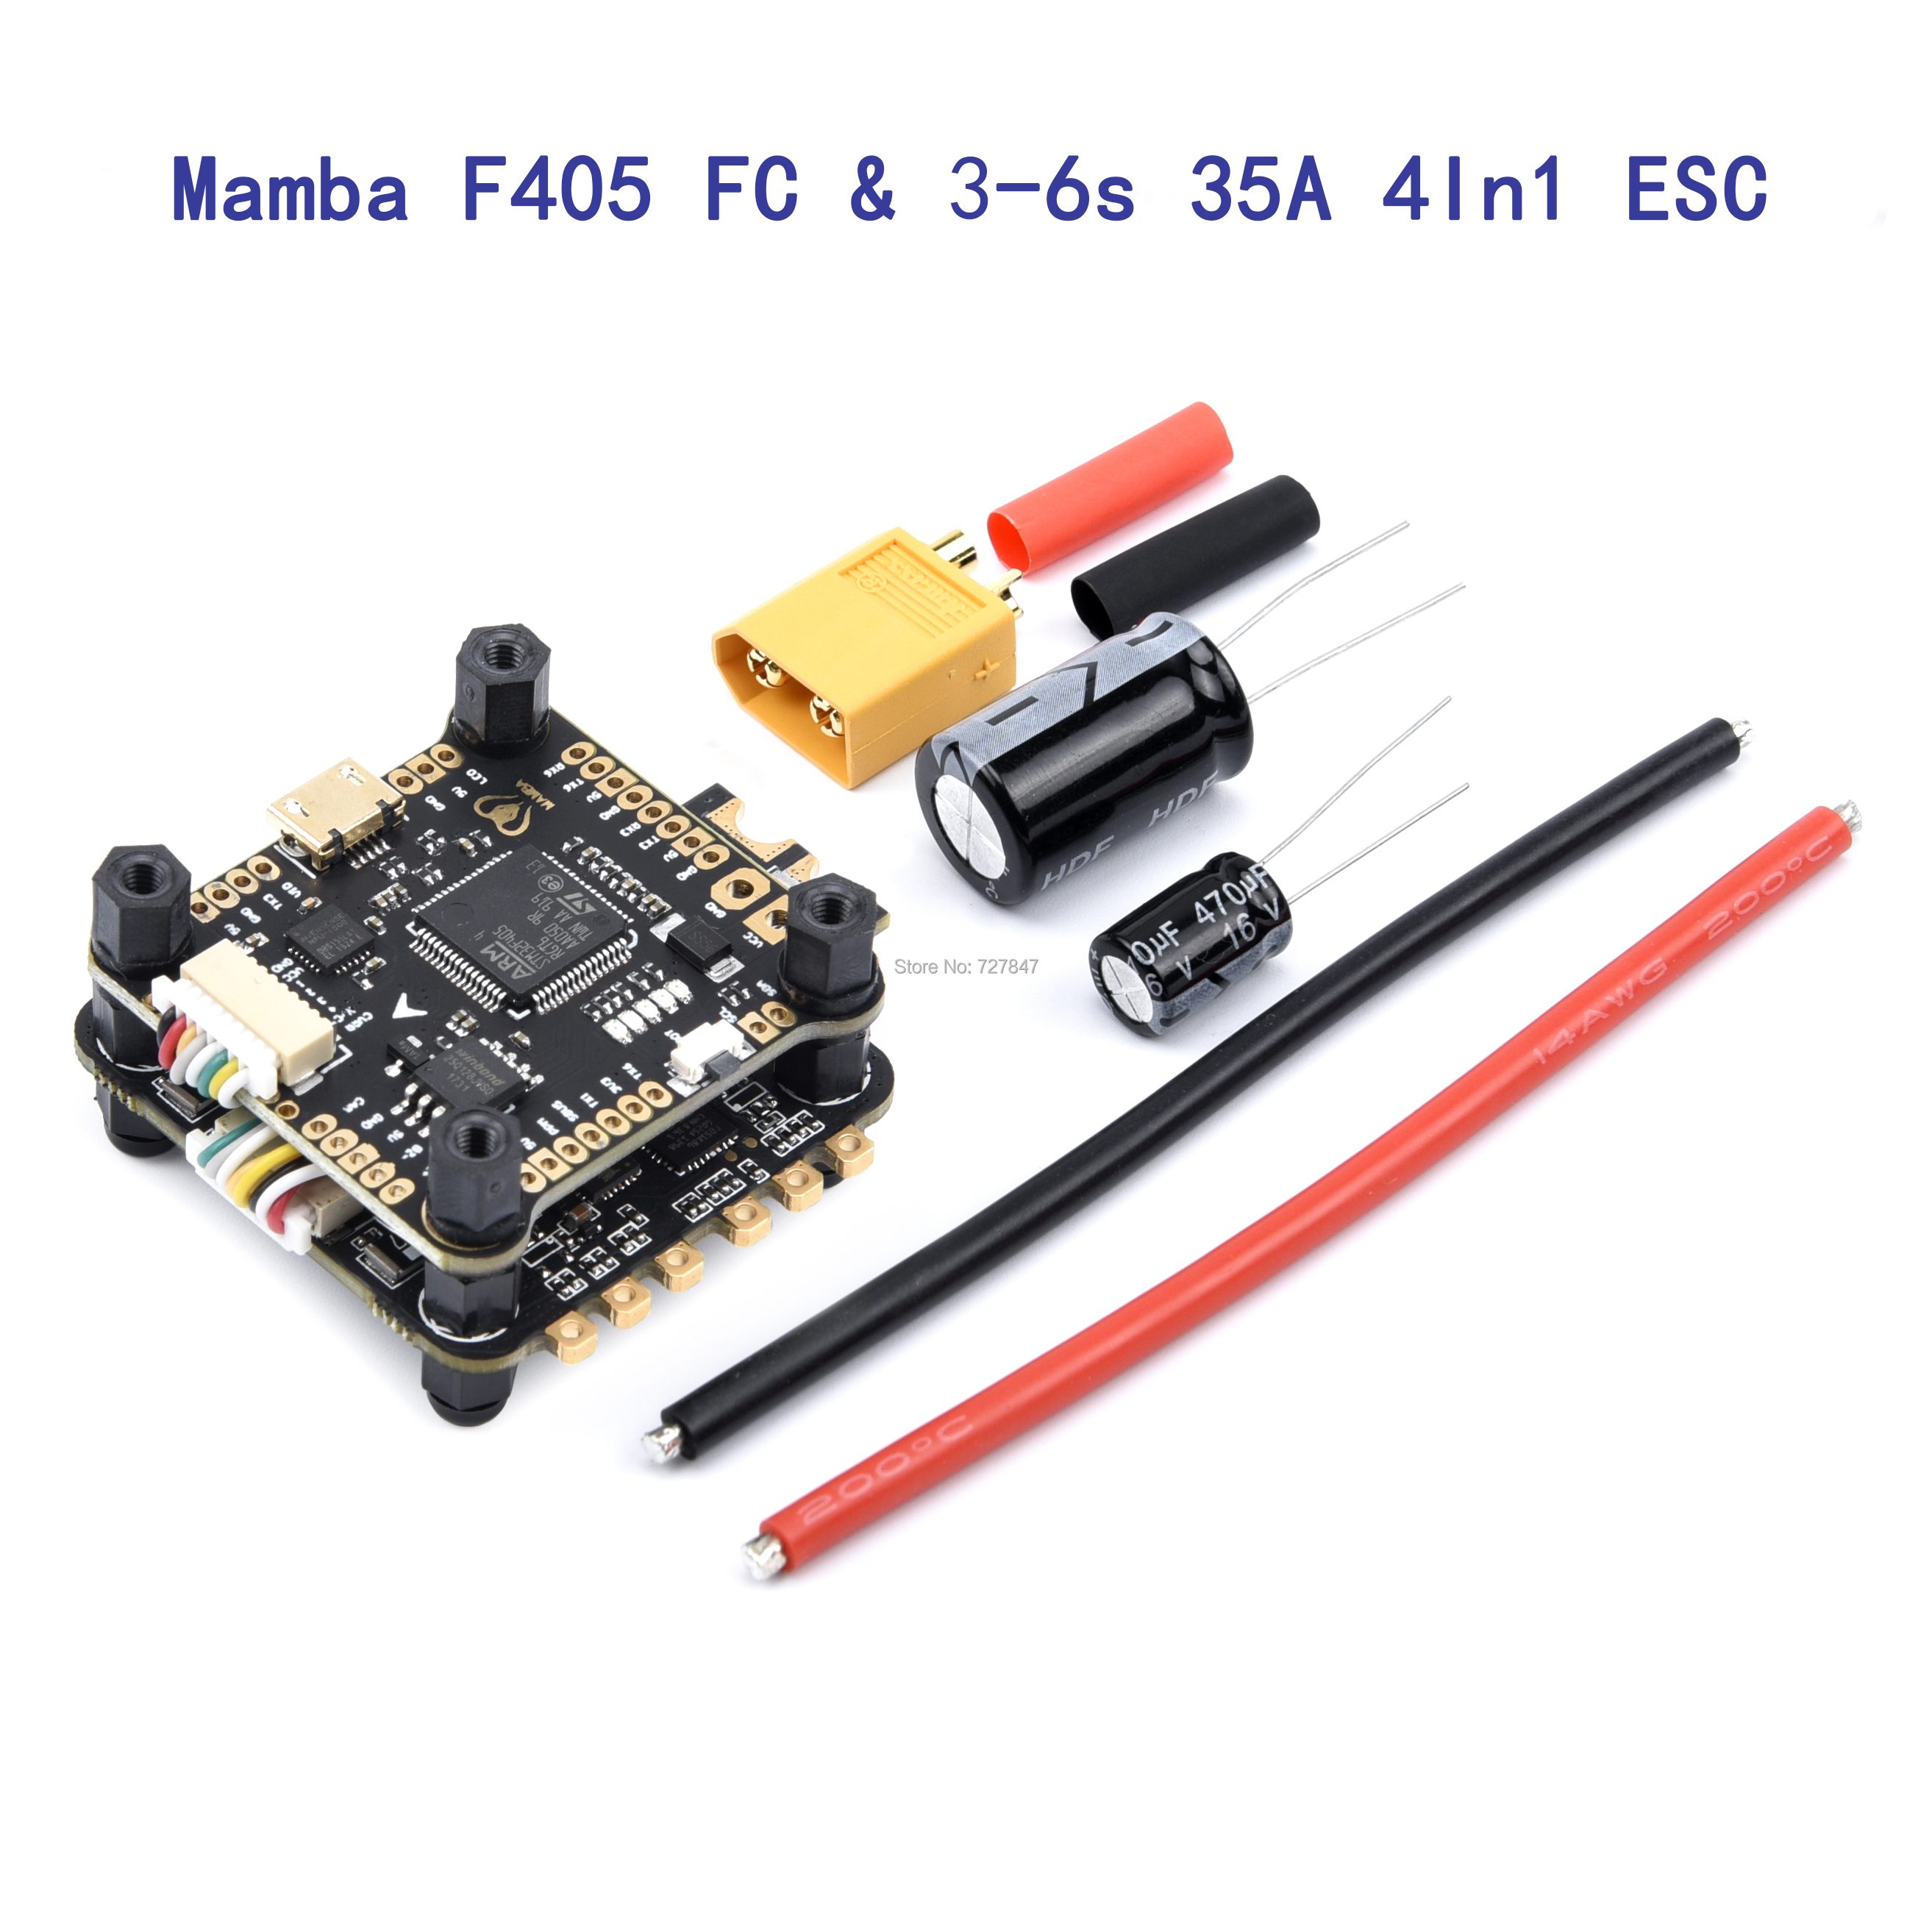 Mamba F405 Flight Controller & 3-6s 35A  4 In 1 ESC  BLHeli32 Brushless ESC Support DShot1200 Dshot600 Dshot300 Multi-axis FPV